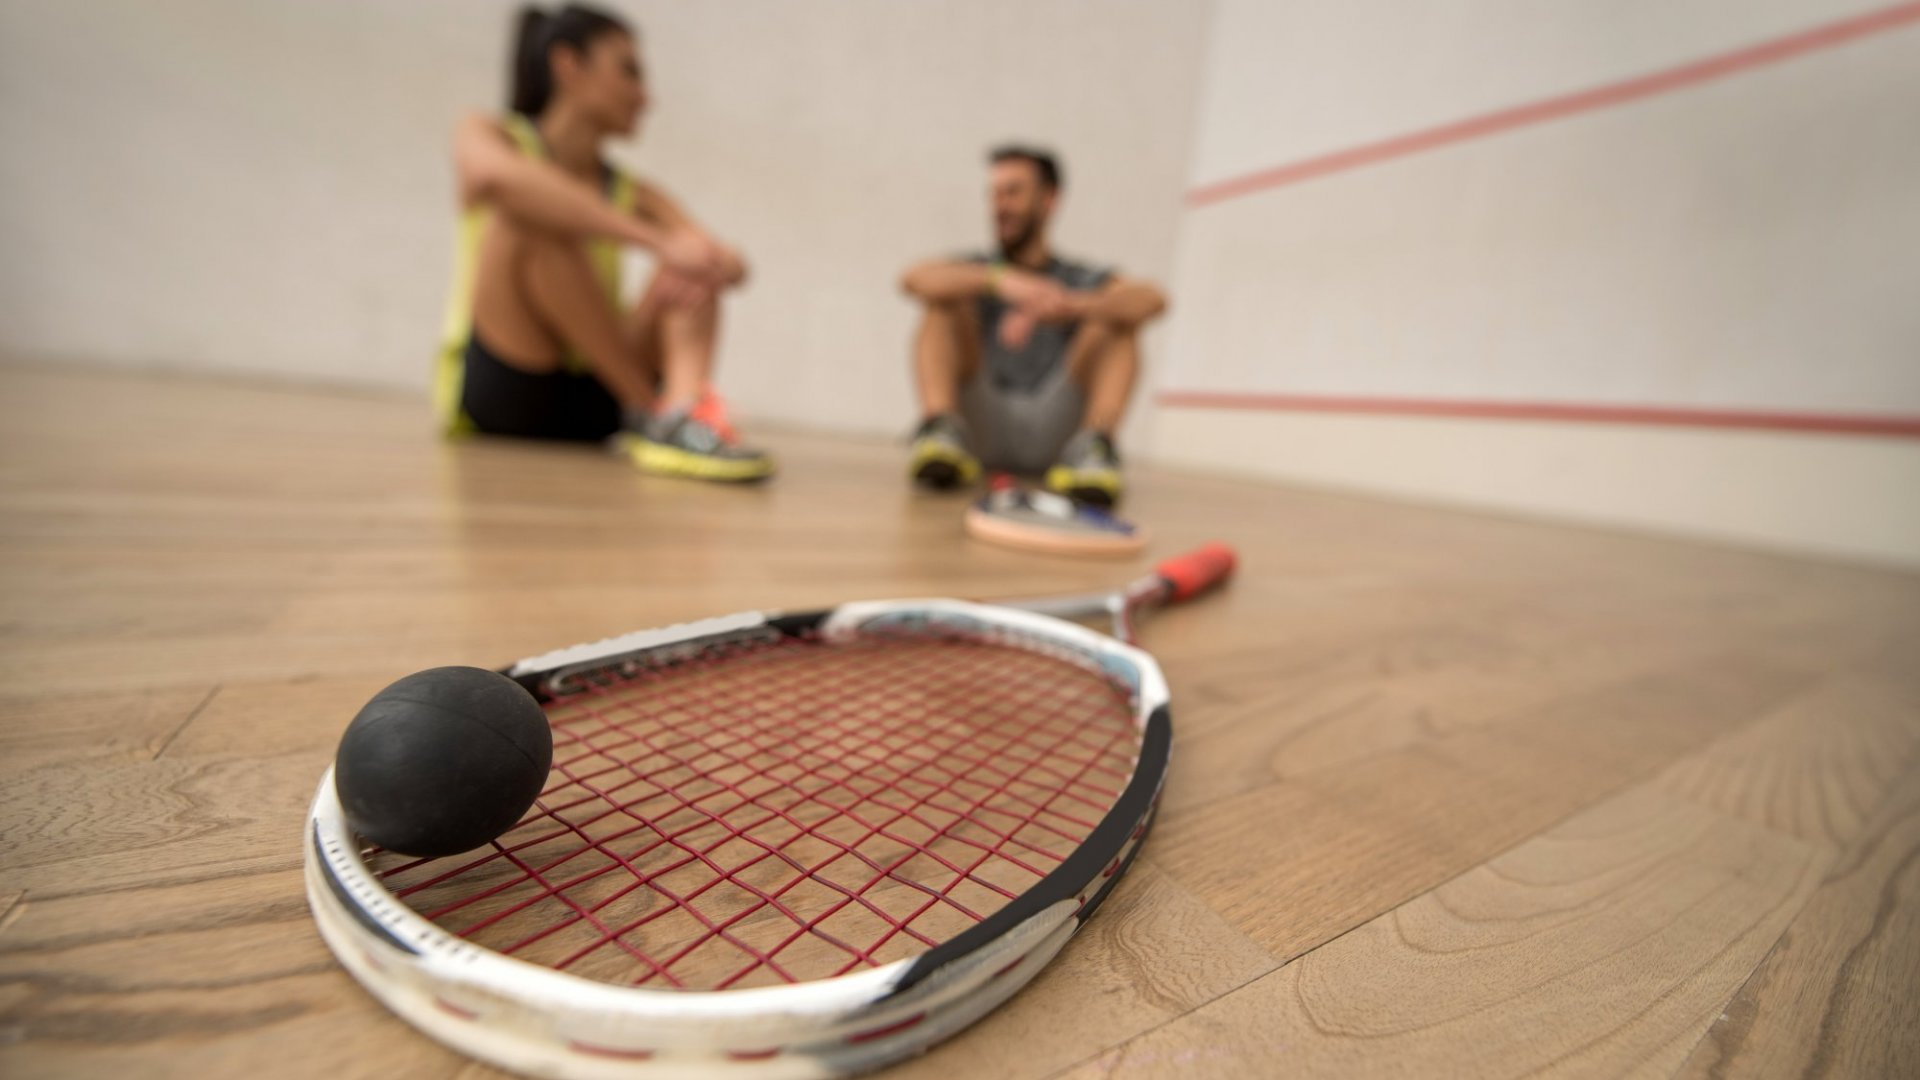 Squash provides some key takeaways entrepreneurs can learn from